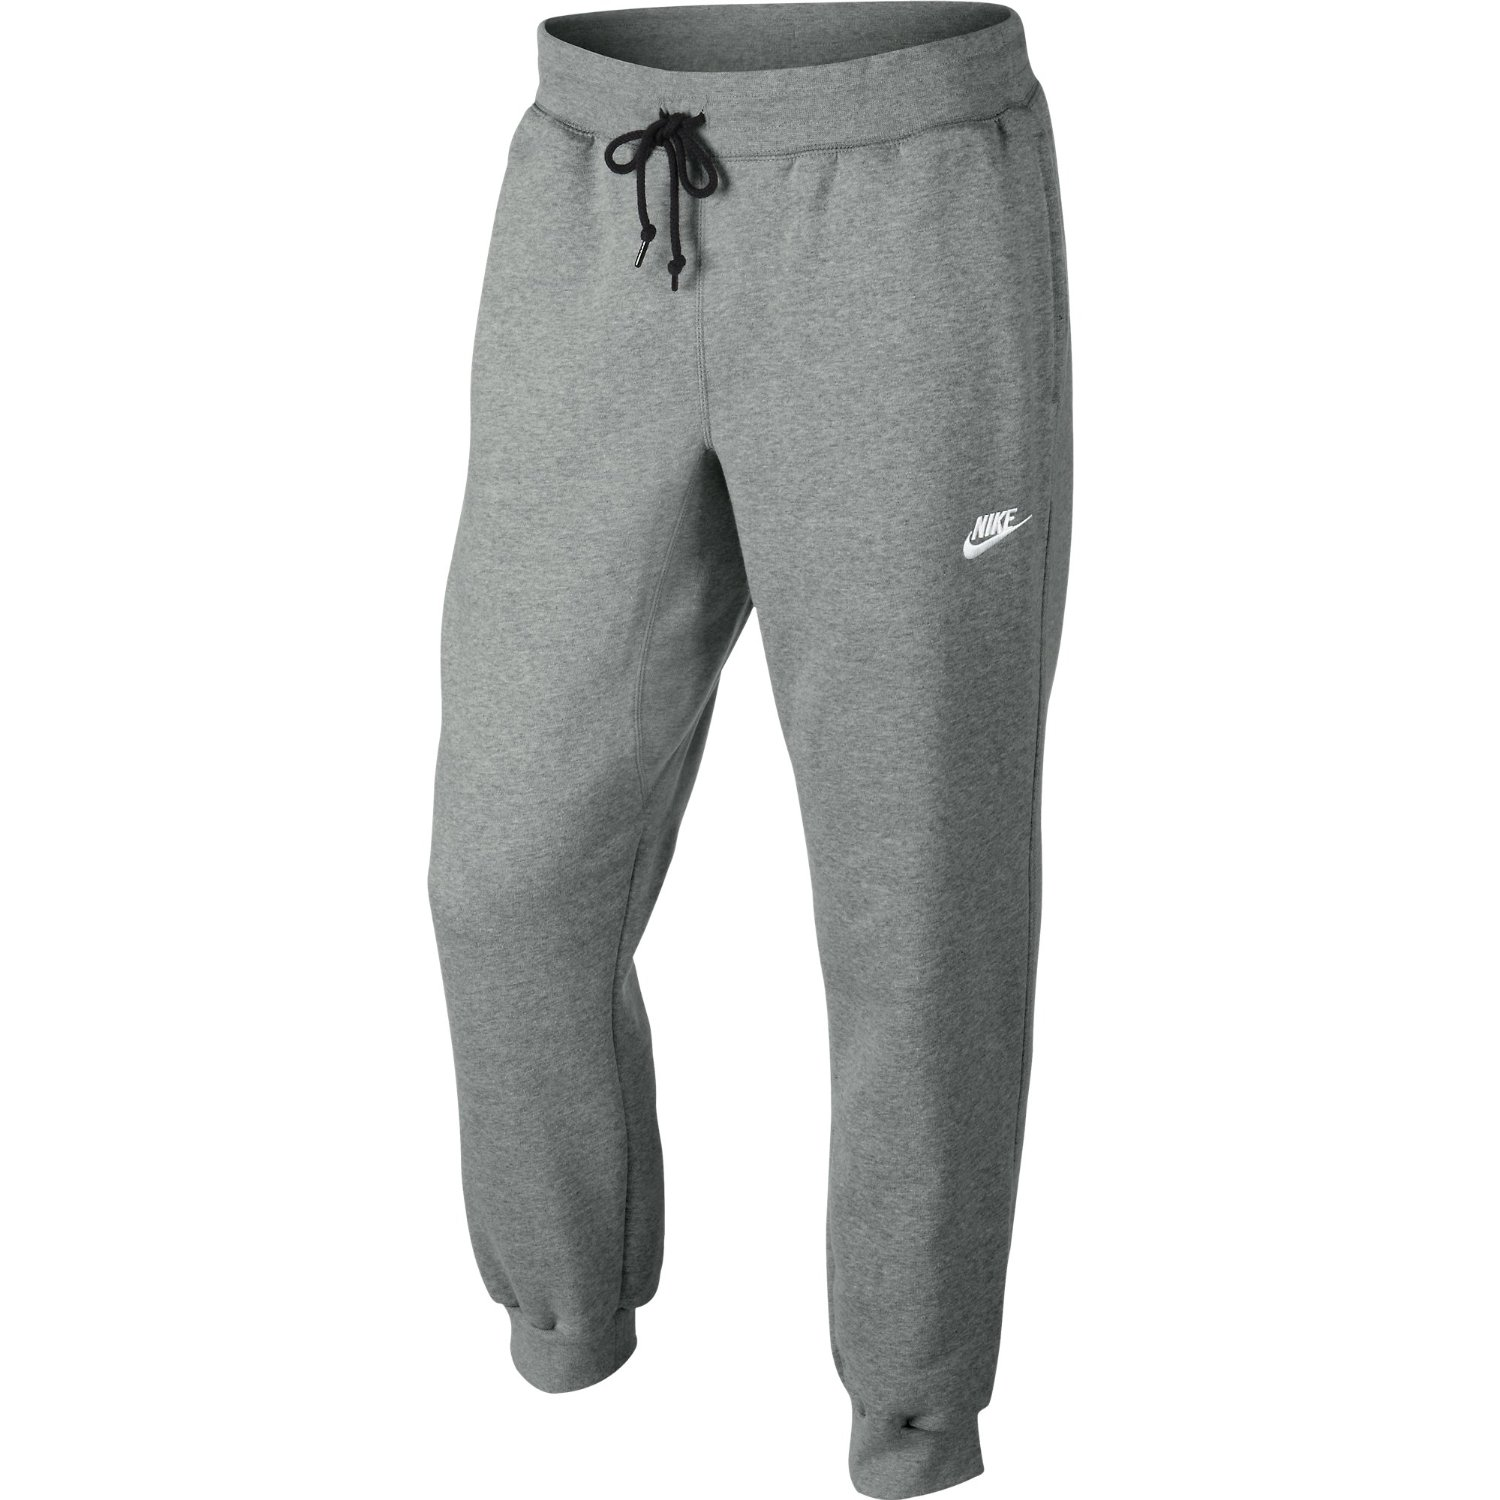 Top 10 Best Men's Sweatpants for Athletic in 2019 reviews